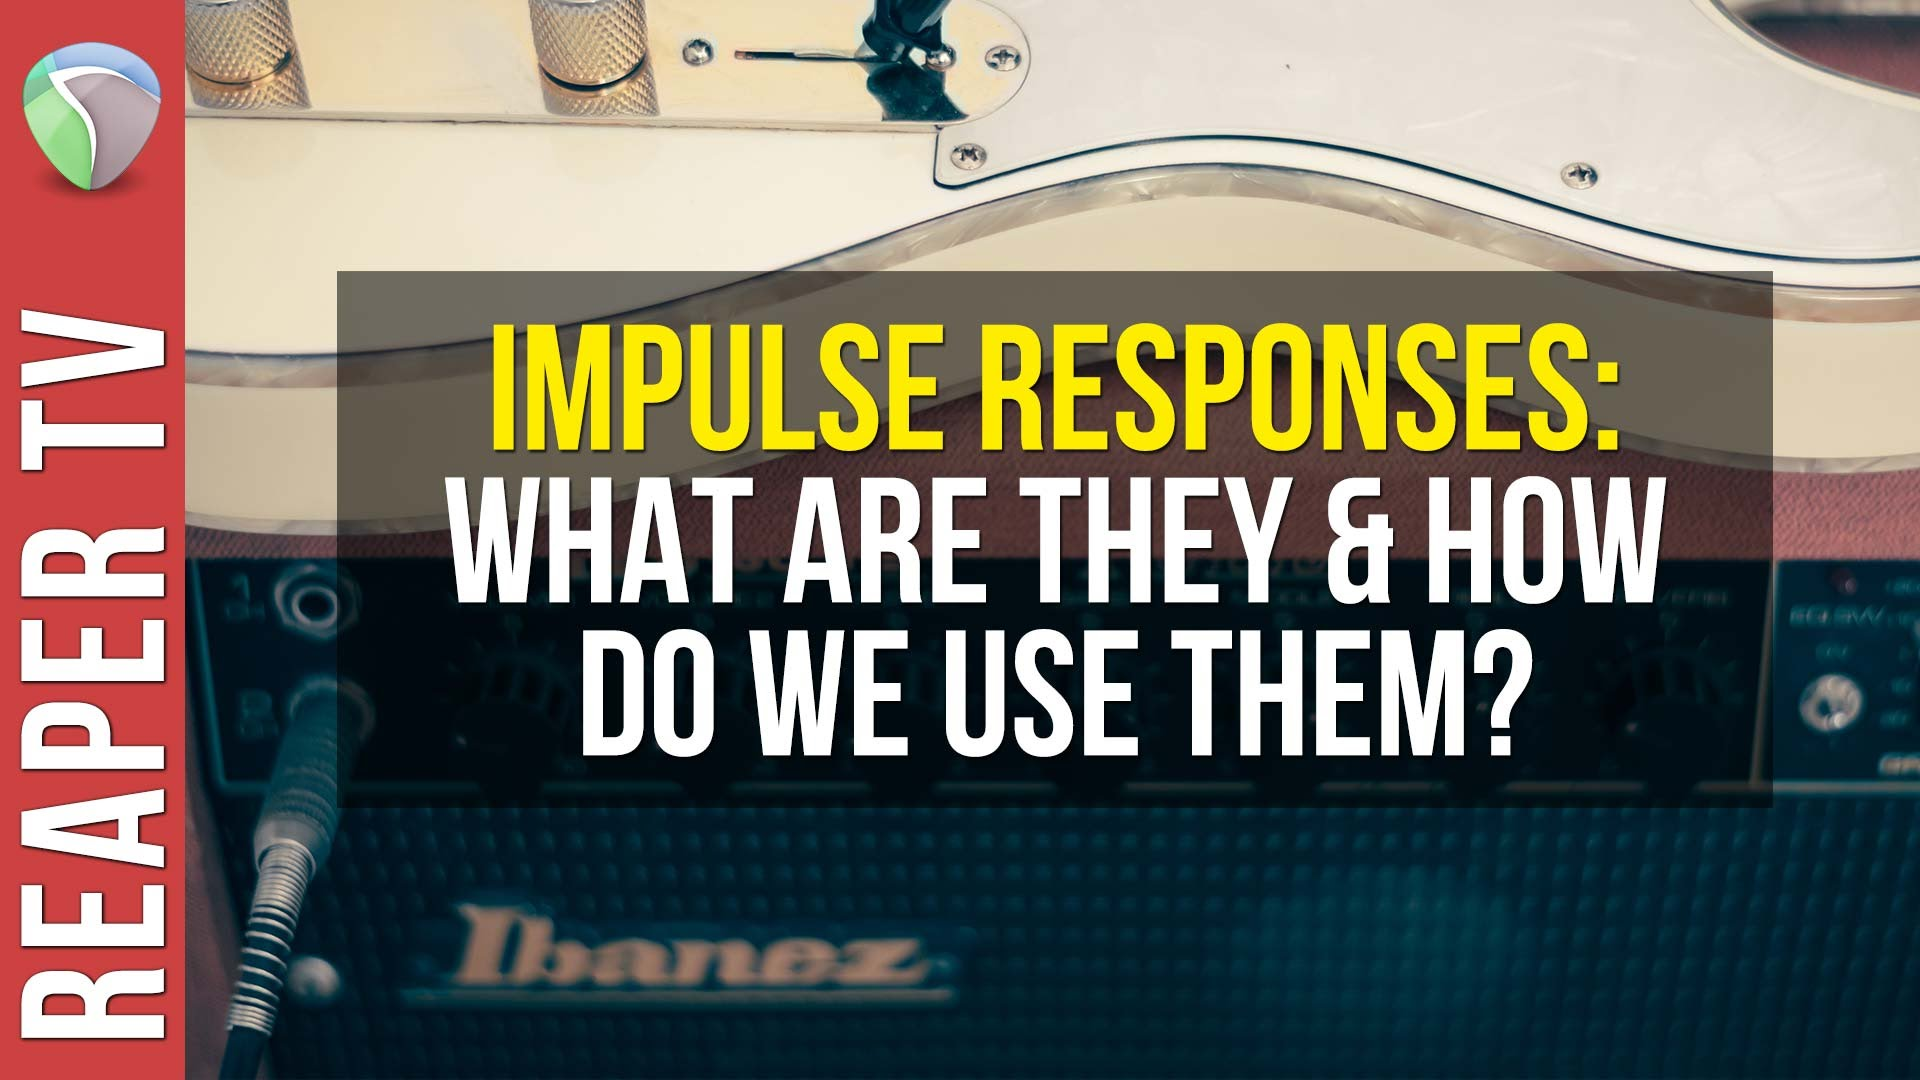 Impulse Responses: What Are They & How Do We Use Them?